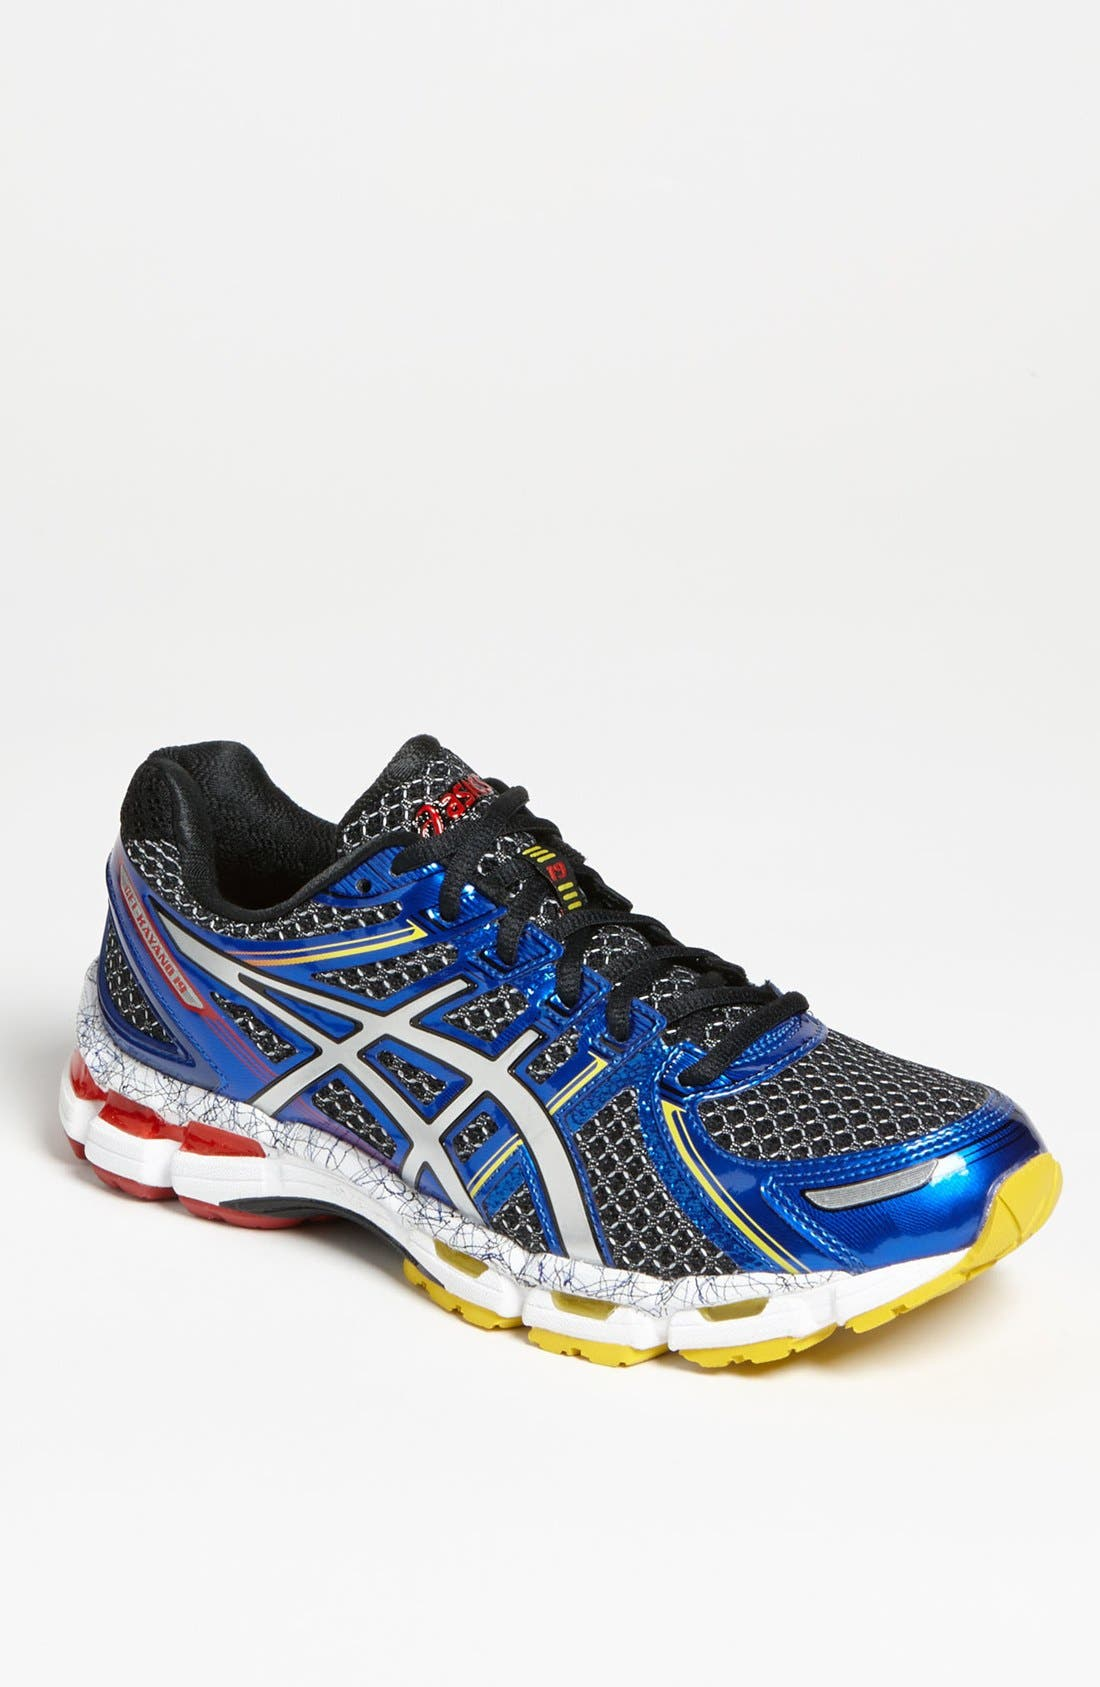 Main Image - ASICS® 'GEL-Kayano® 19' Running Shoe (Men) (Online Only)